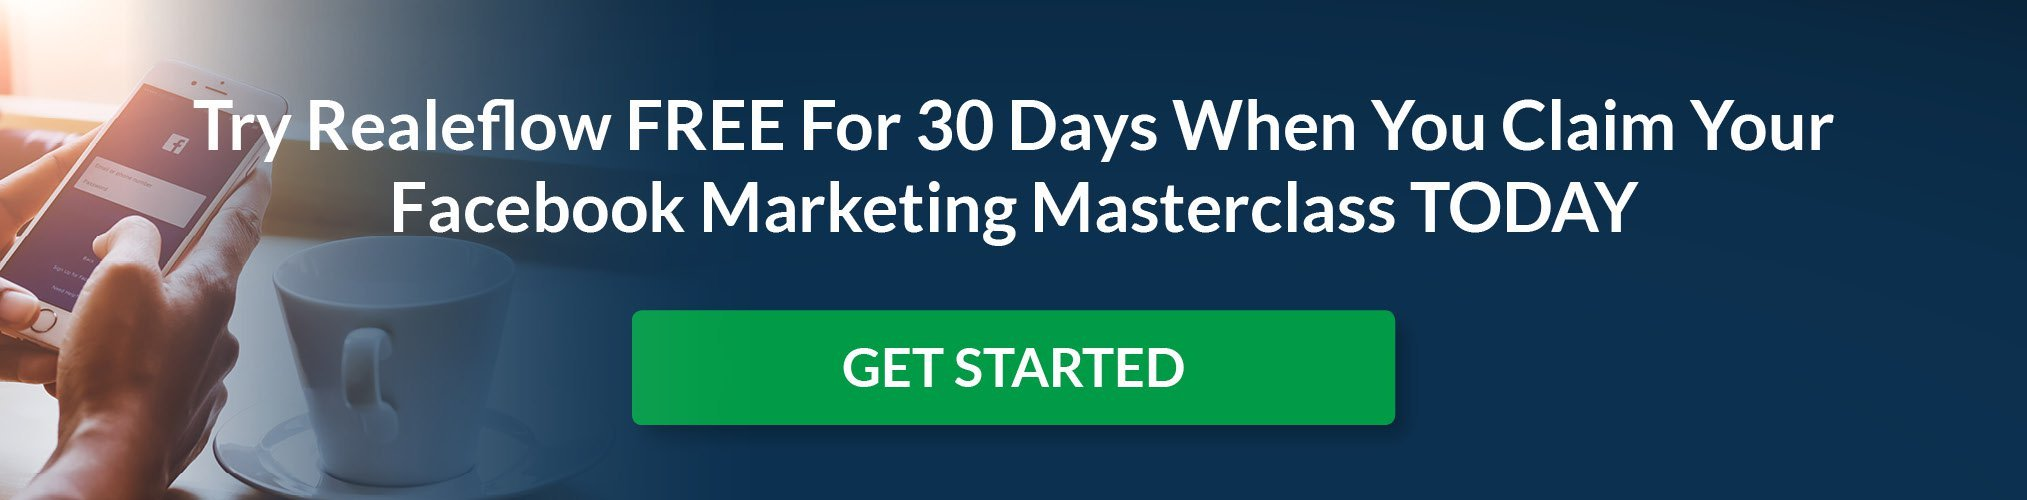 Facebook Marketing Masterclass Button